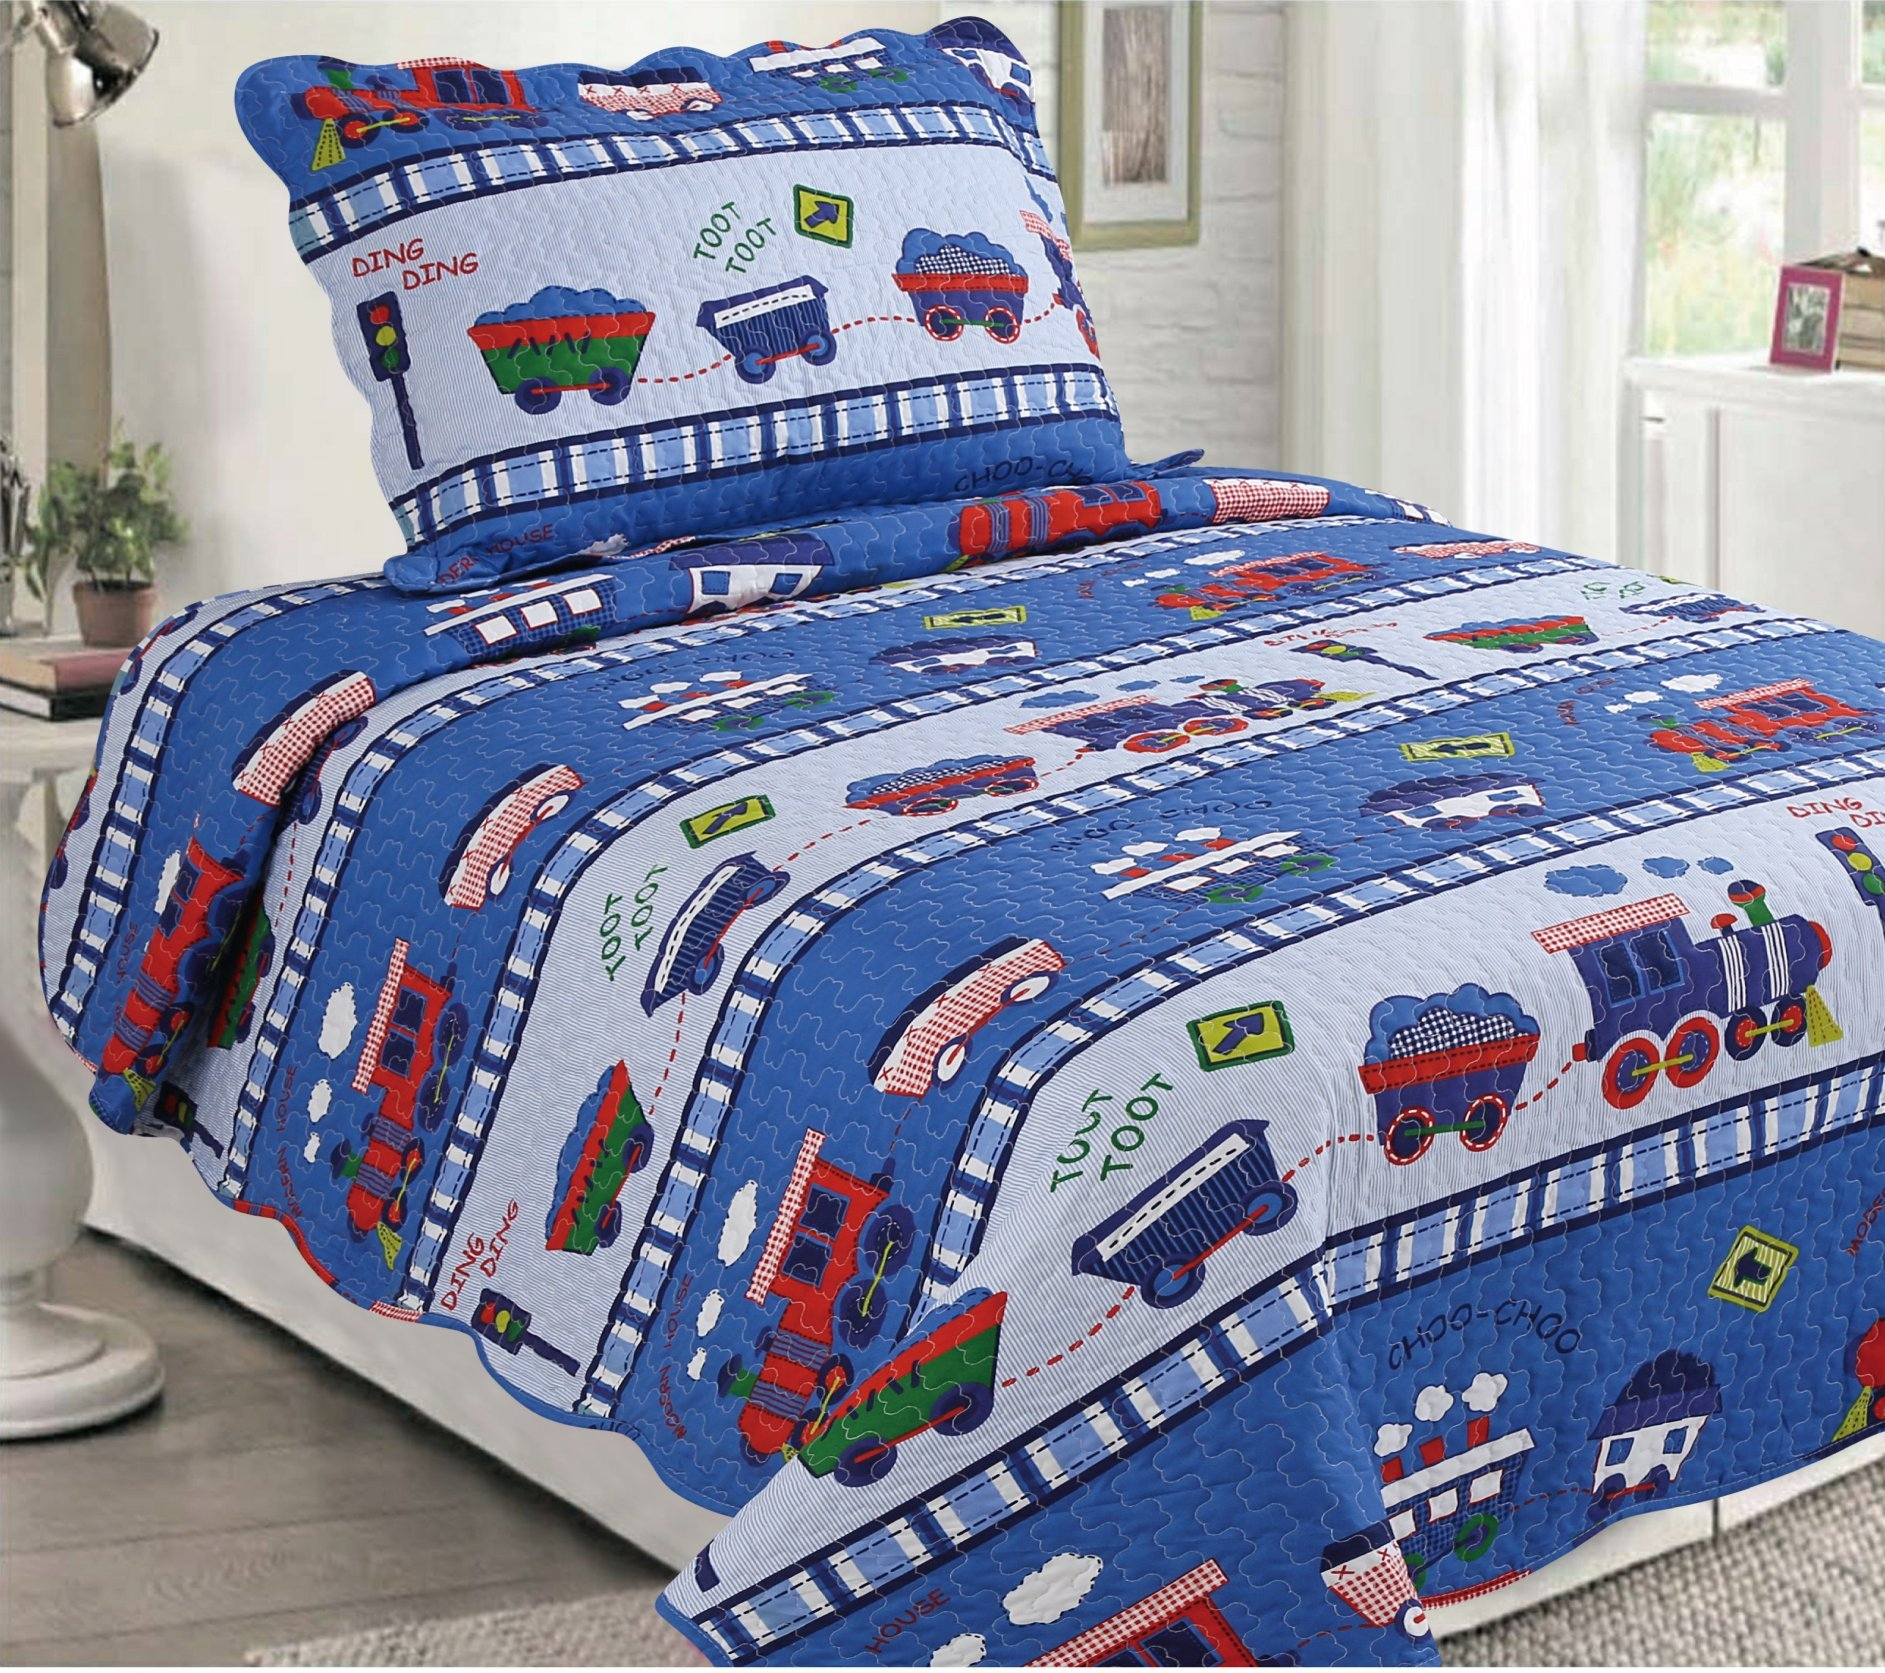 Golden Linens Twin Size 2 Pieces Quilt Bedspread Set Kids New Designs for Boys & Girls (Toot Toot Train(29)) by Goldenlinens